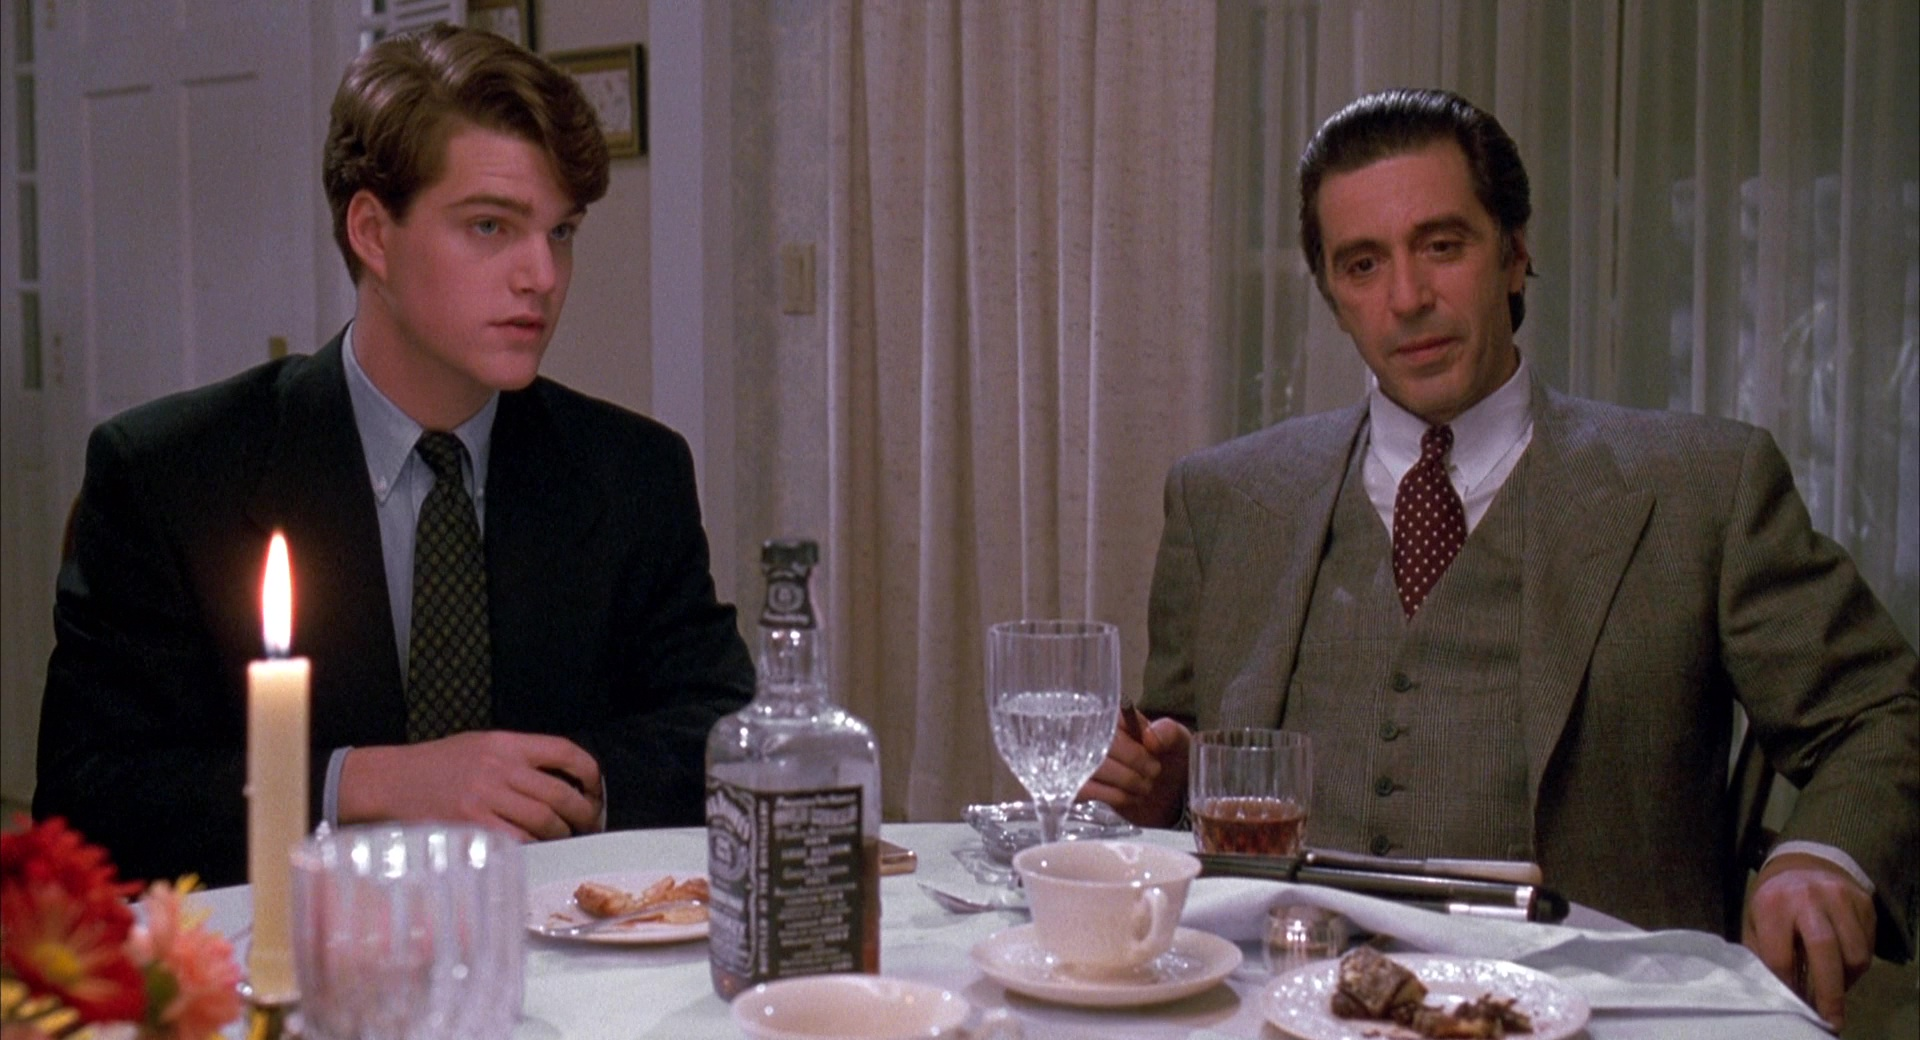 Jack Daniel S Whiskey Chris O Donnell And Al Pacino In Scent Of A Woman 1992